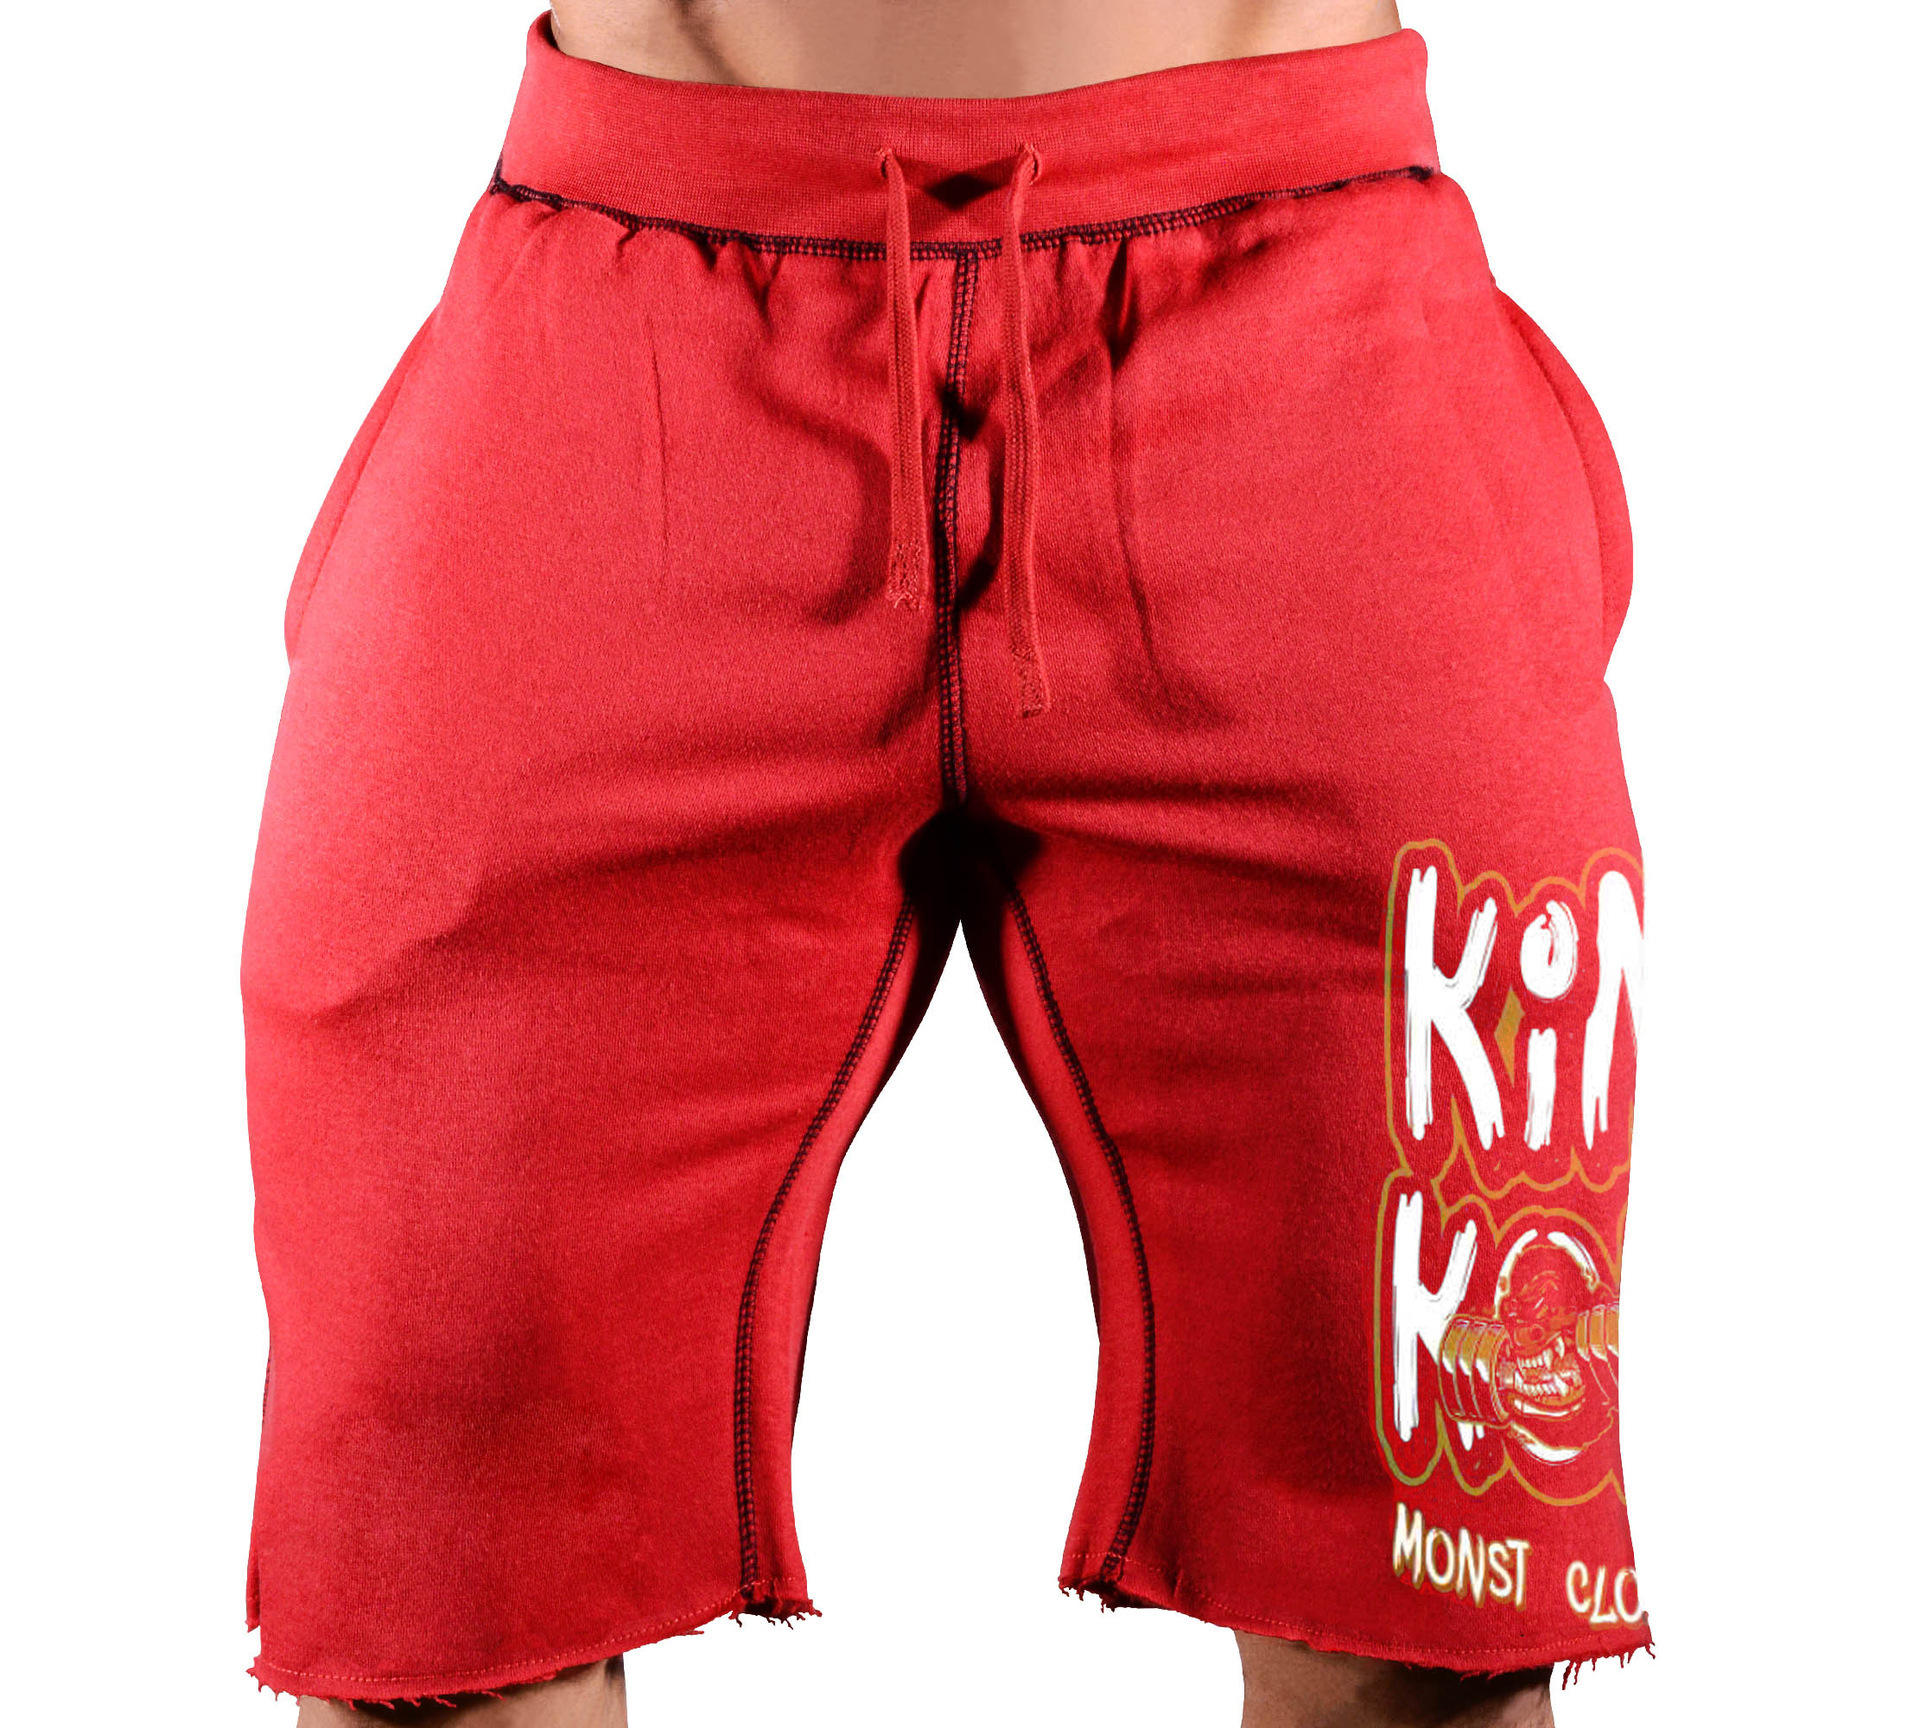 Plus size training sweat shorts men knee length red cotton french terry shorts